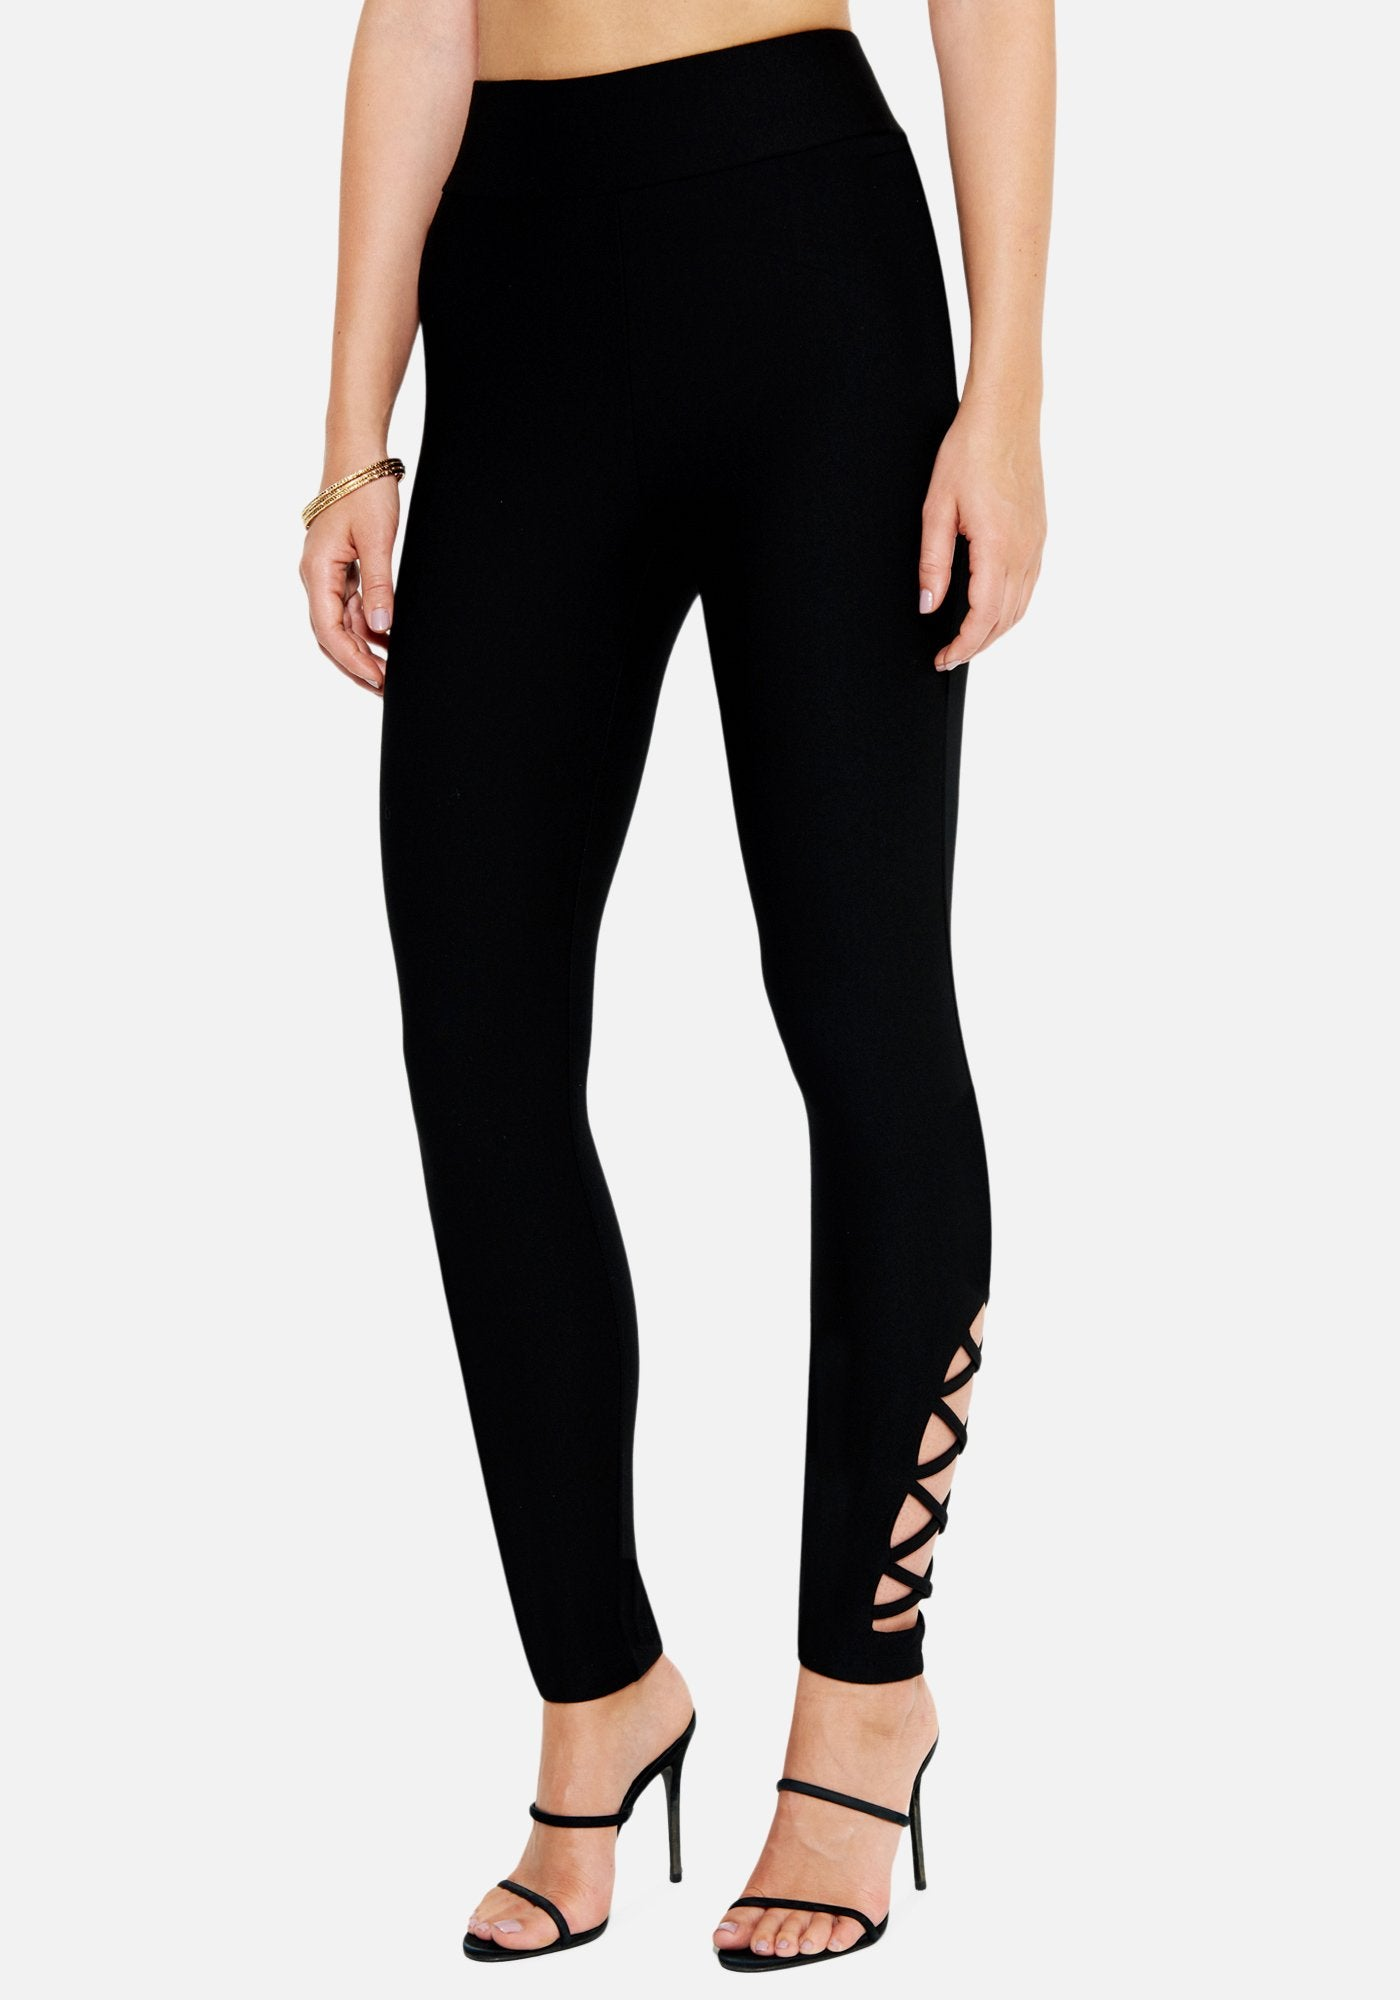 Bebe Women's Ankle Cutout Legging, Size XXS in BLACK Spandex/Nylon